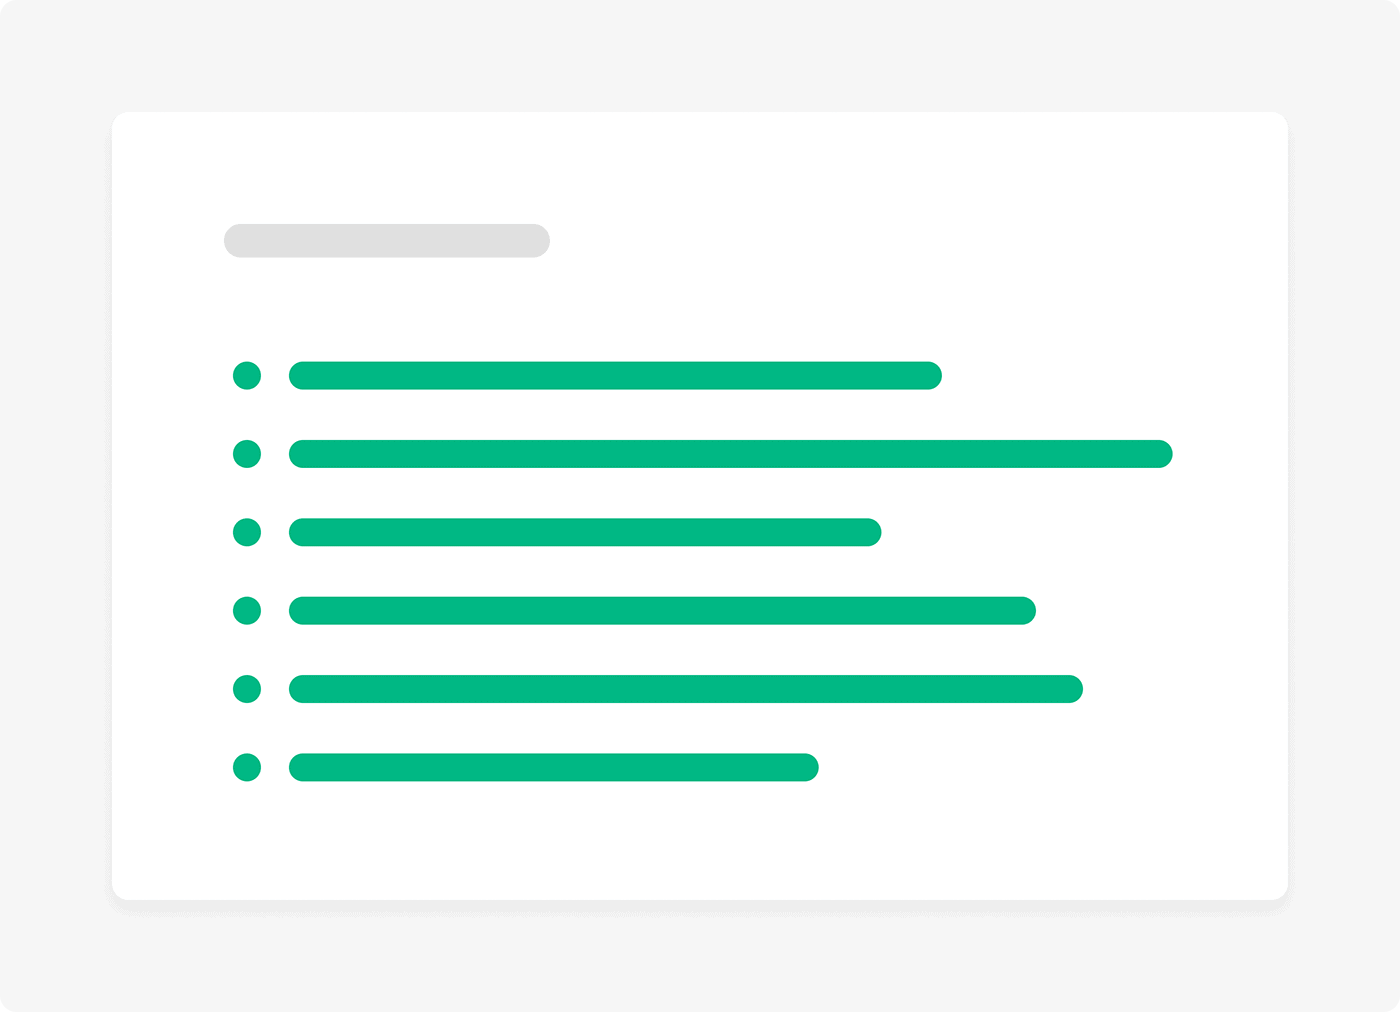 Bullet points help user quickly scan information